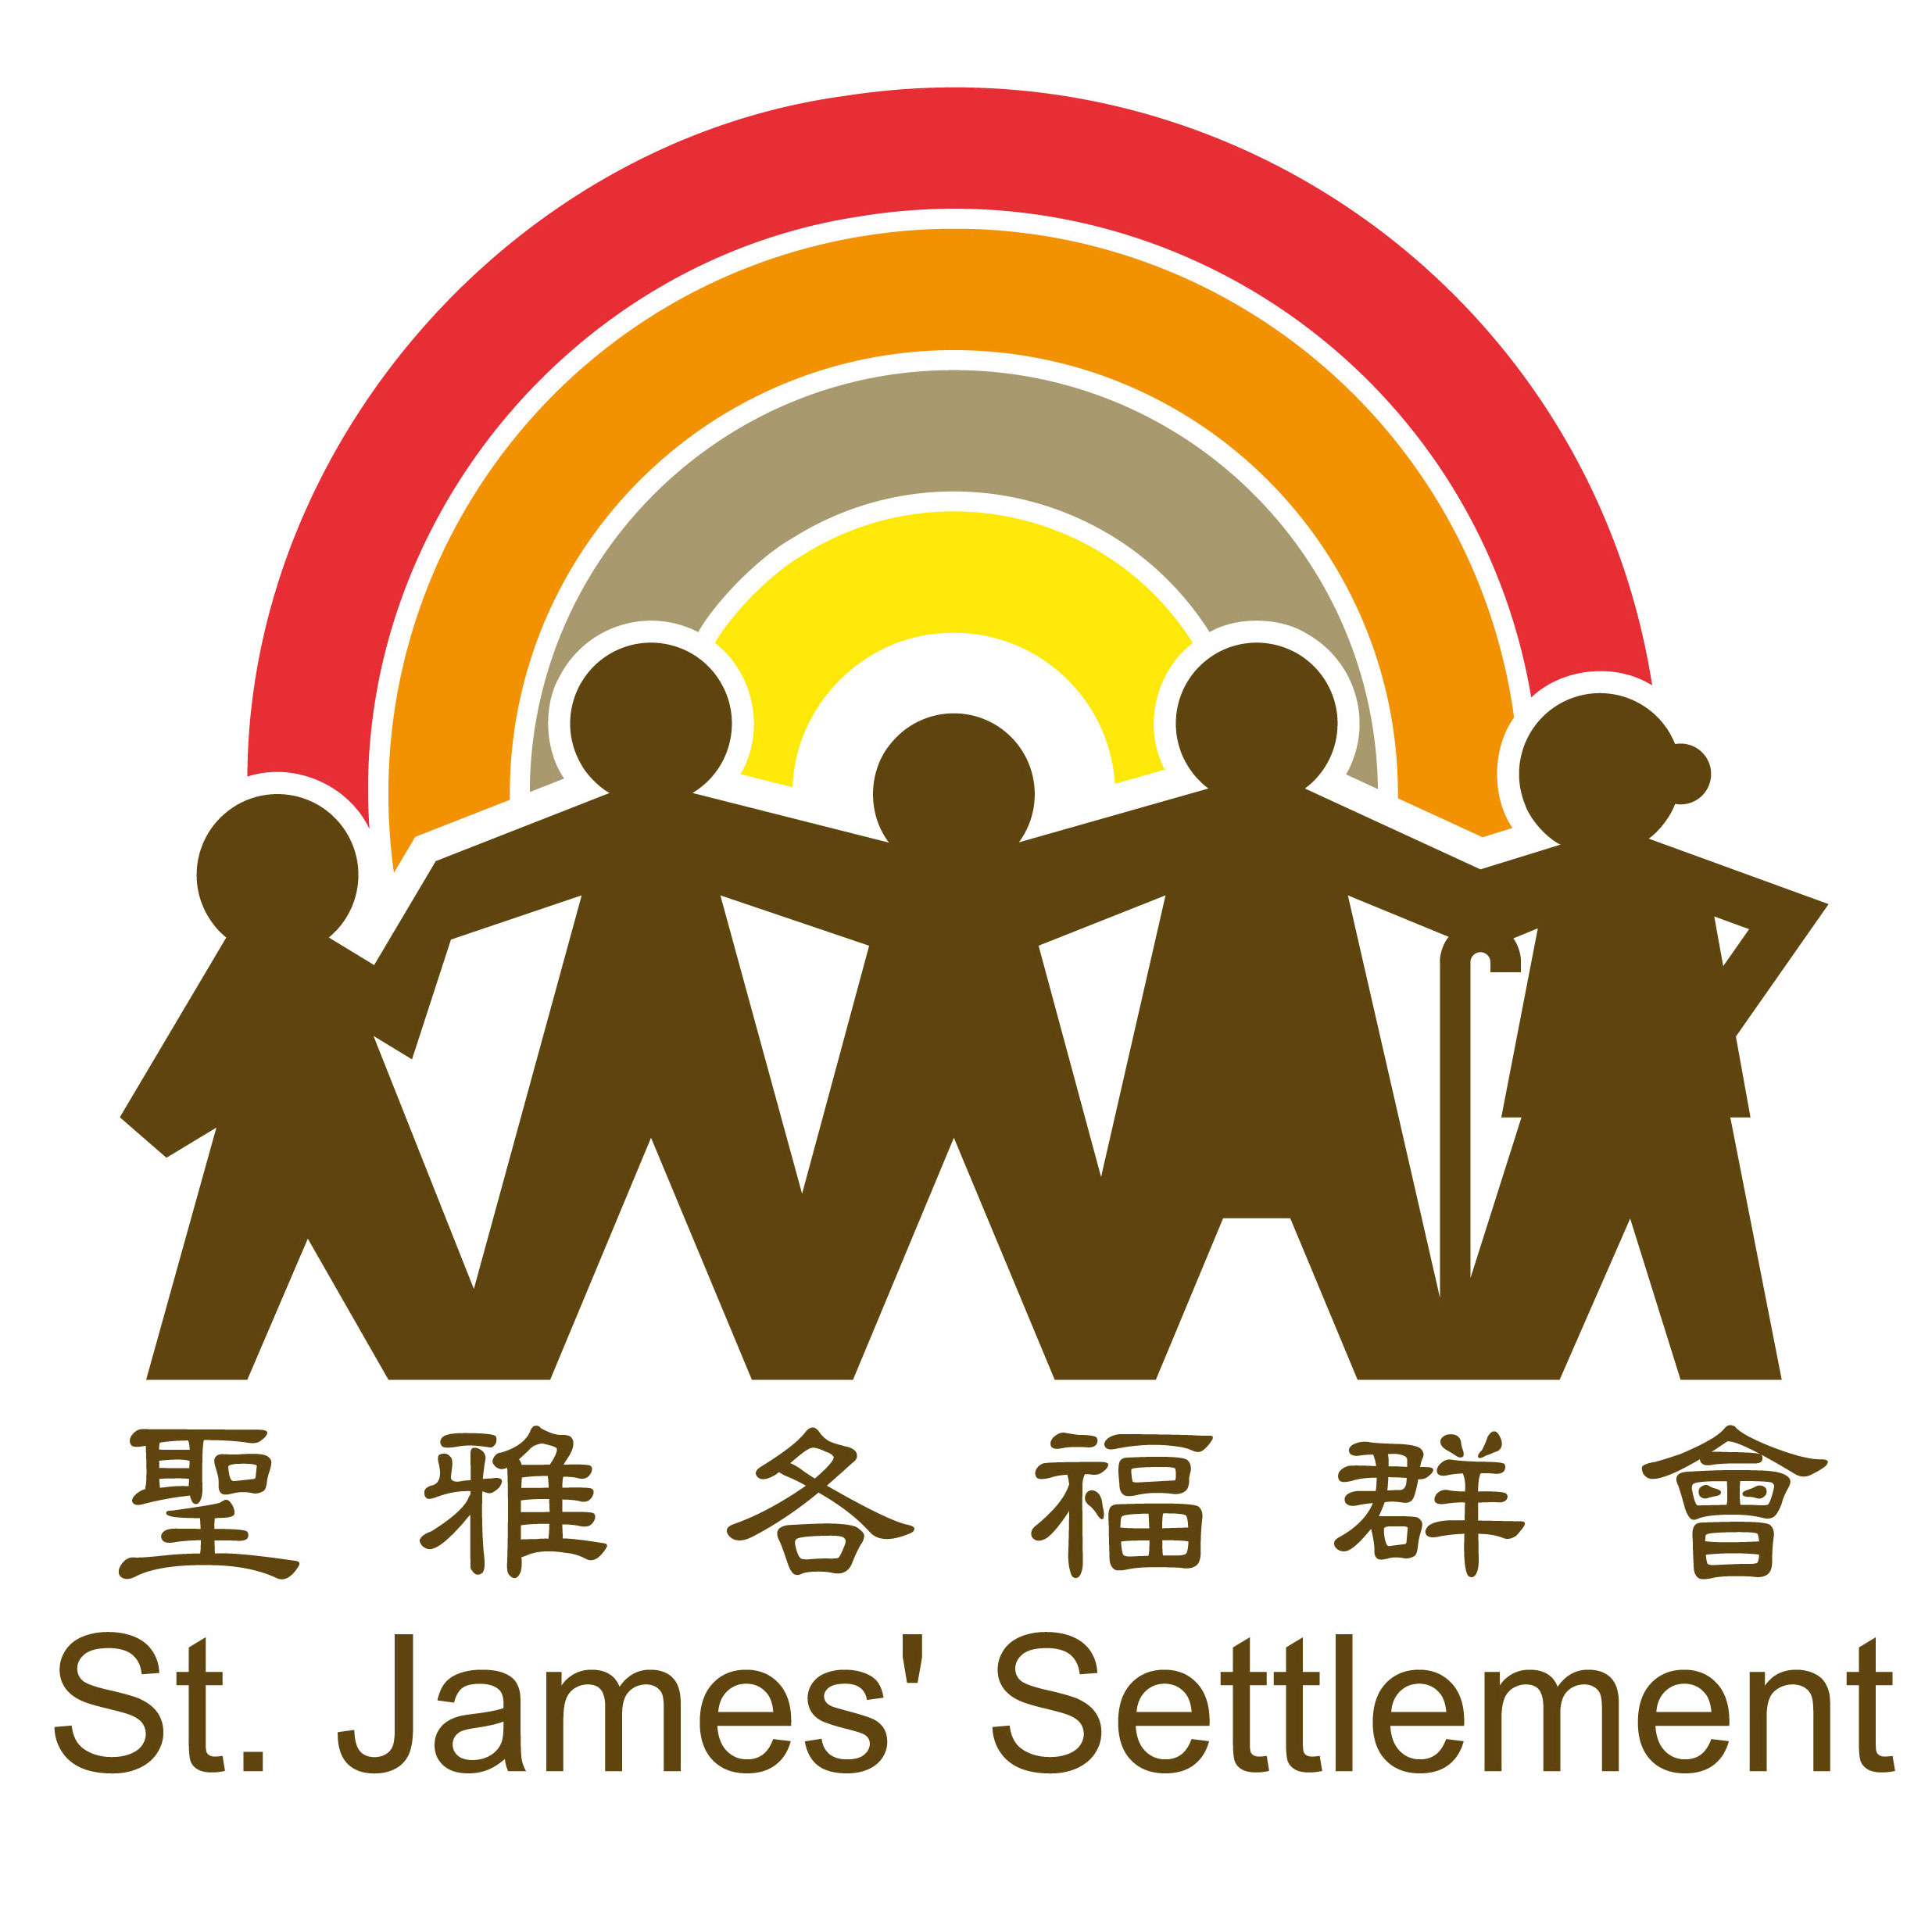 St. James Settlements